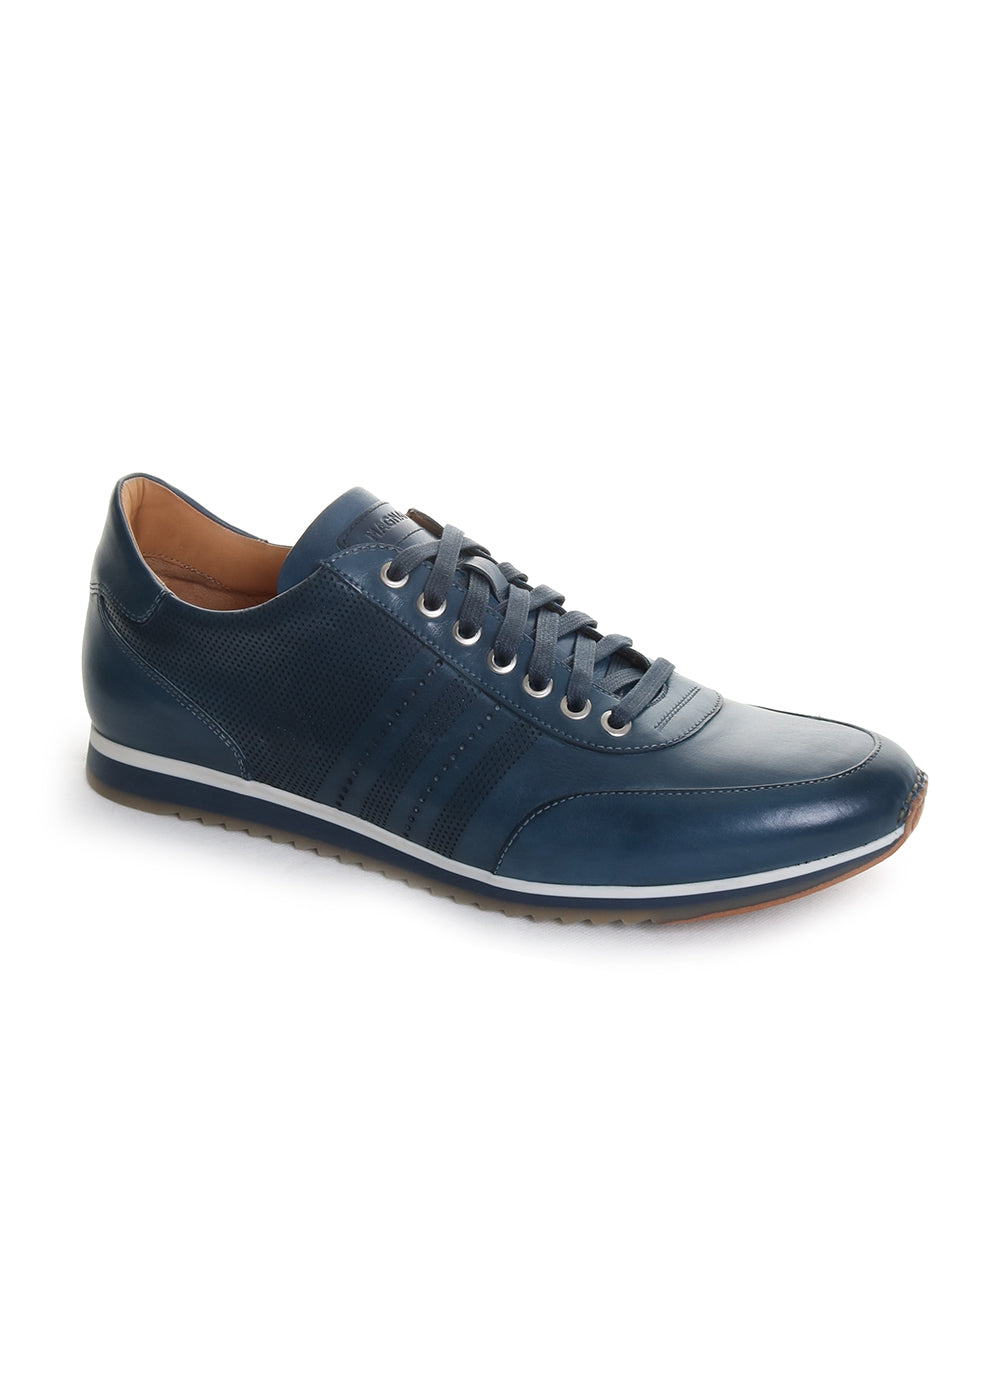 Magnanni Men's Merino Sneaker in Navy